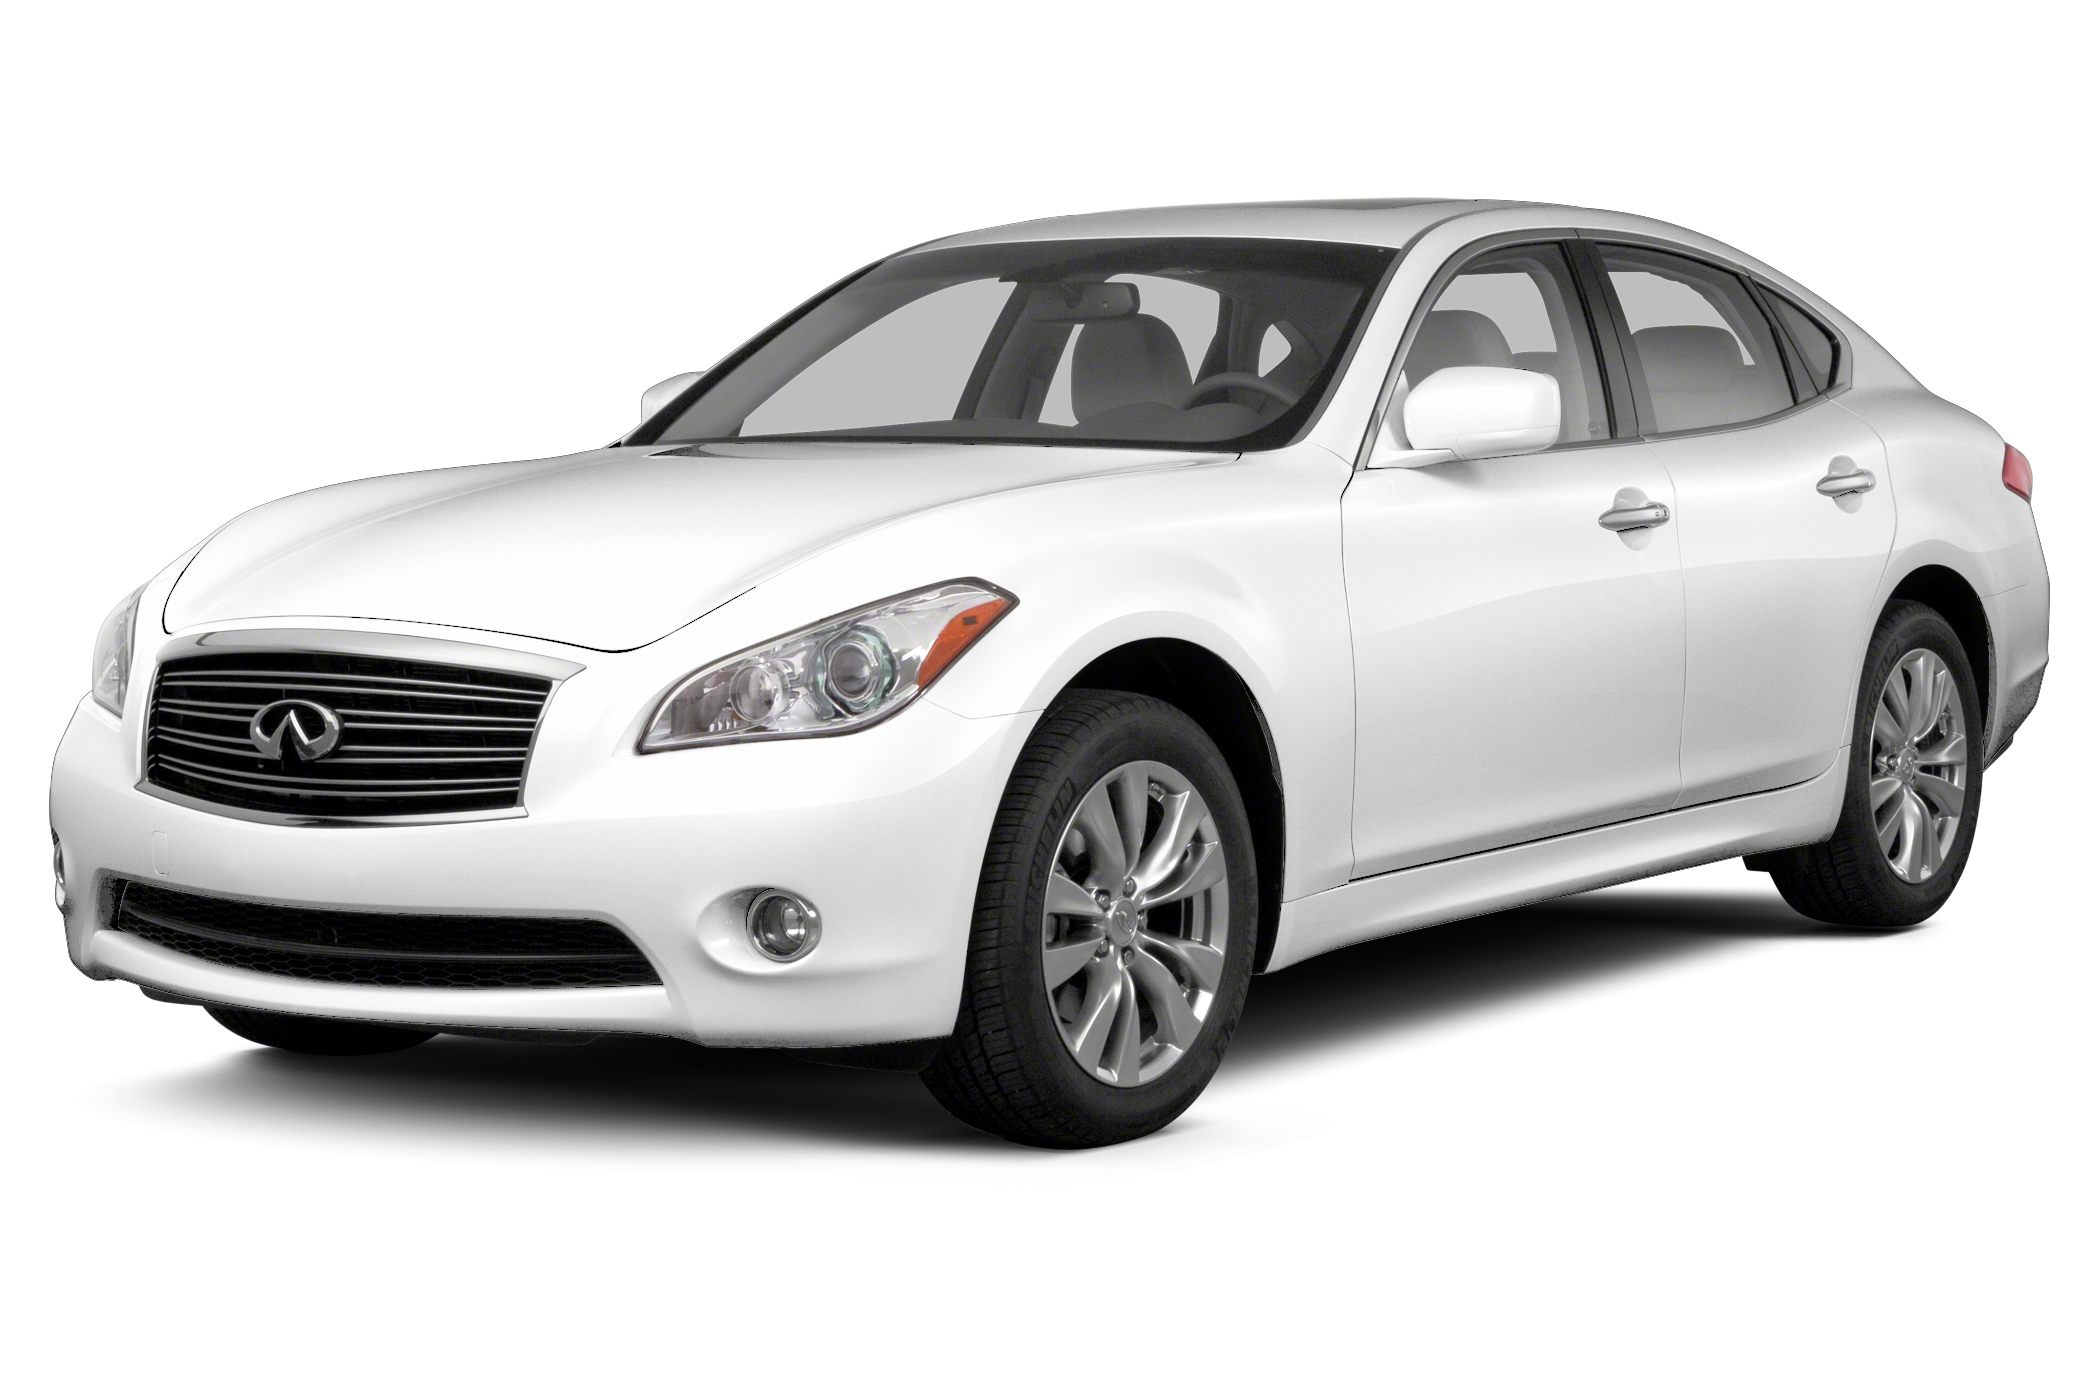 2013 Infiniti M37x